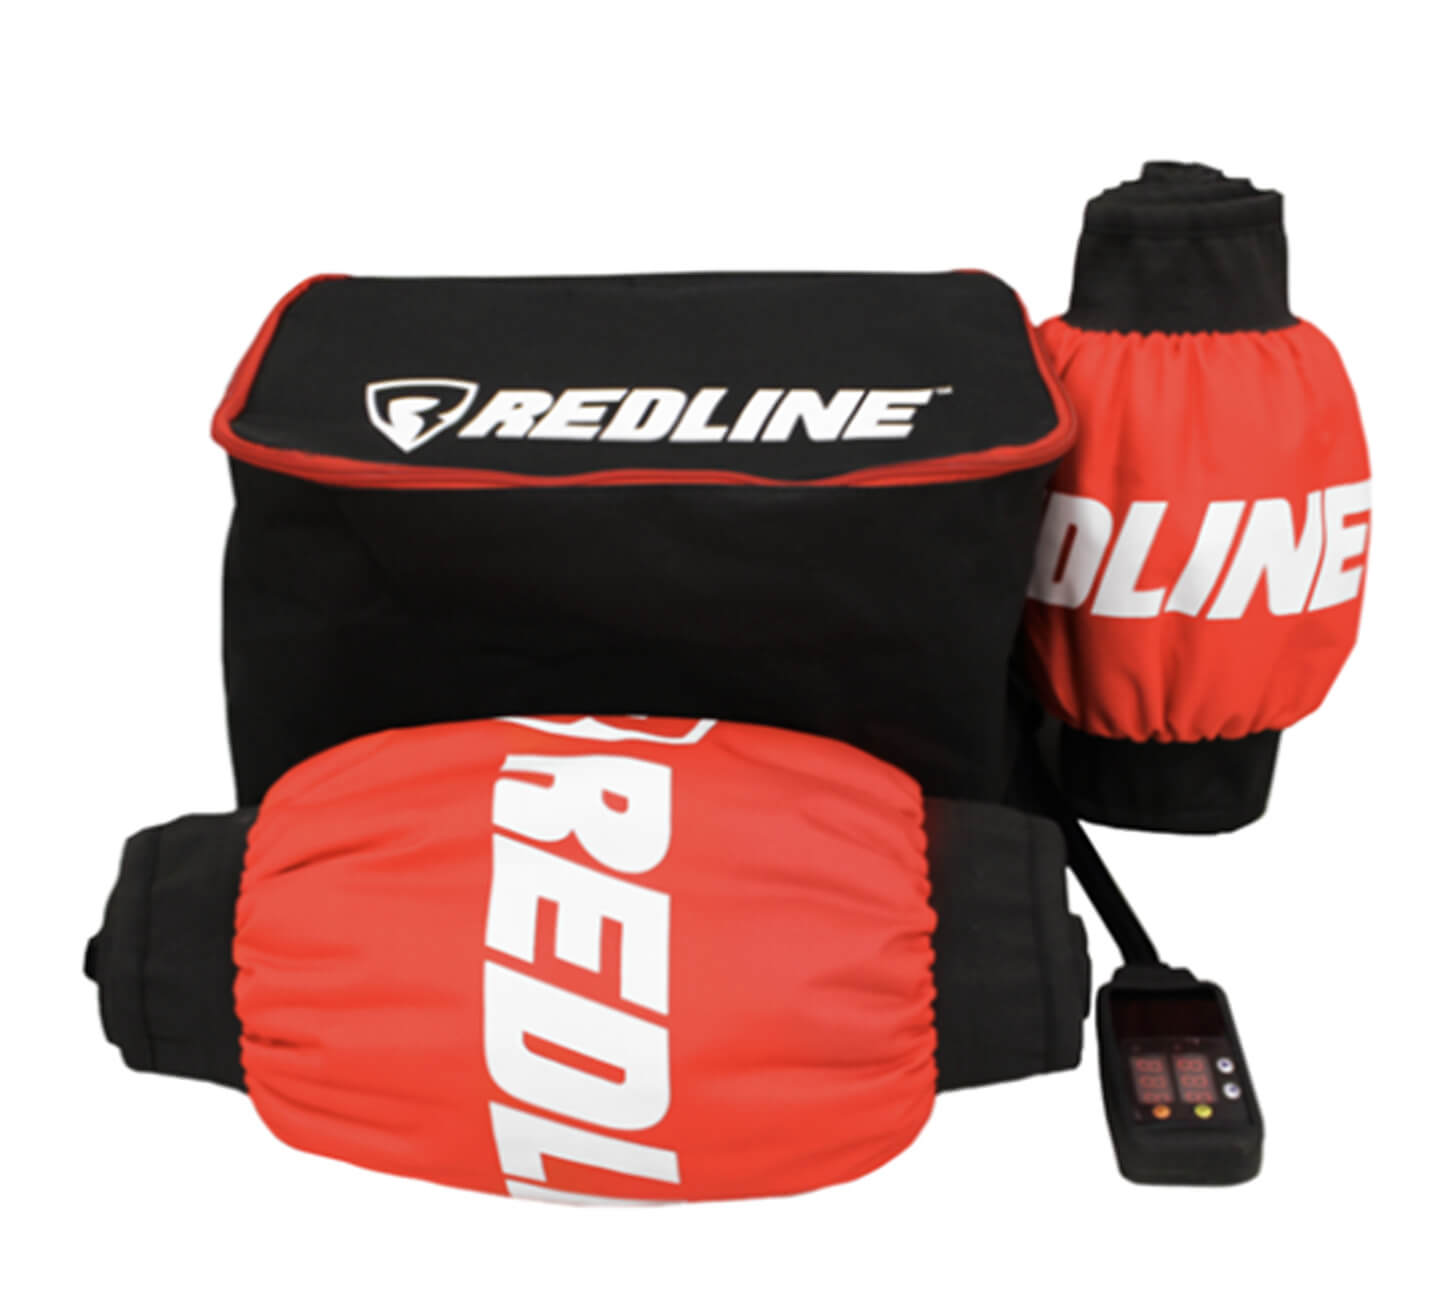 red-line moto tire warmers